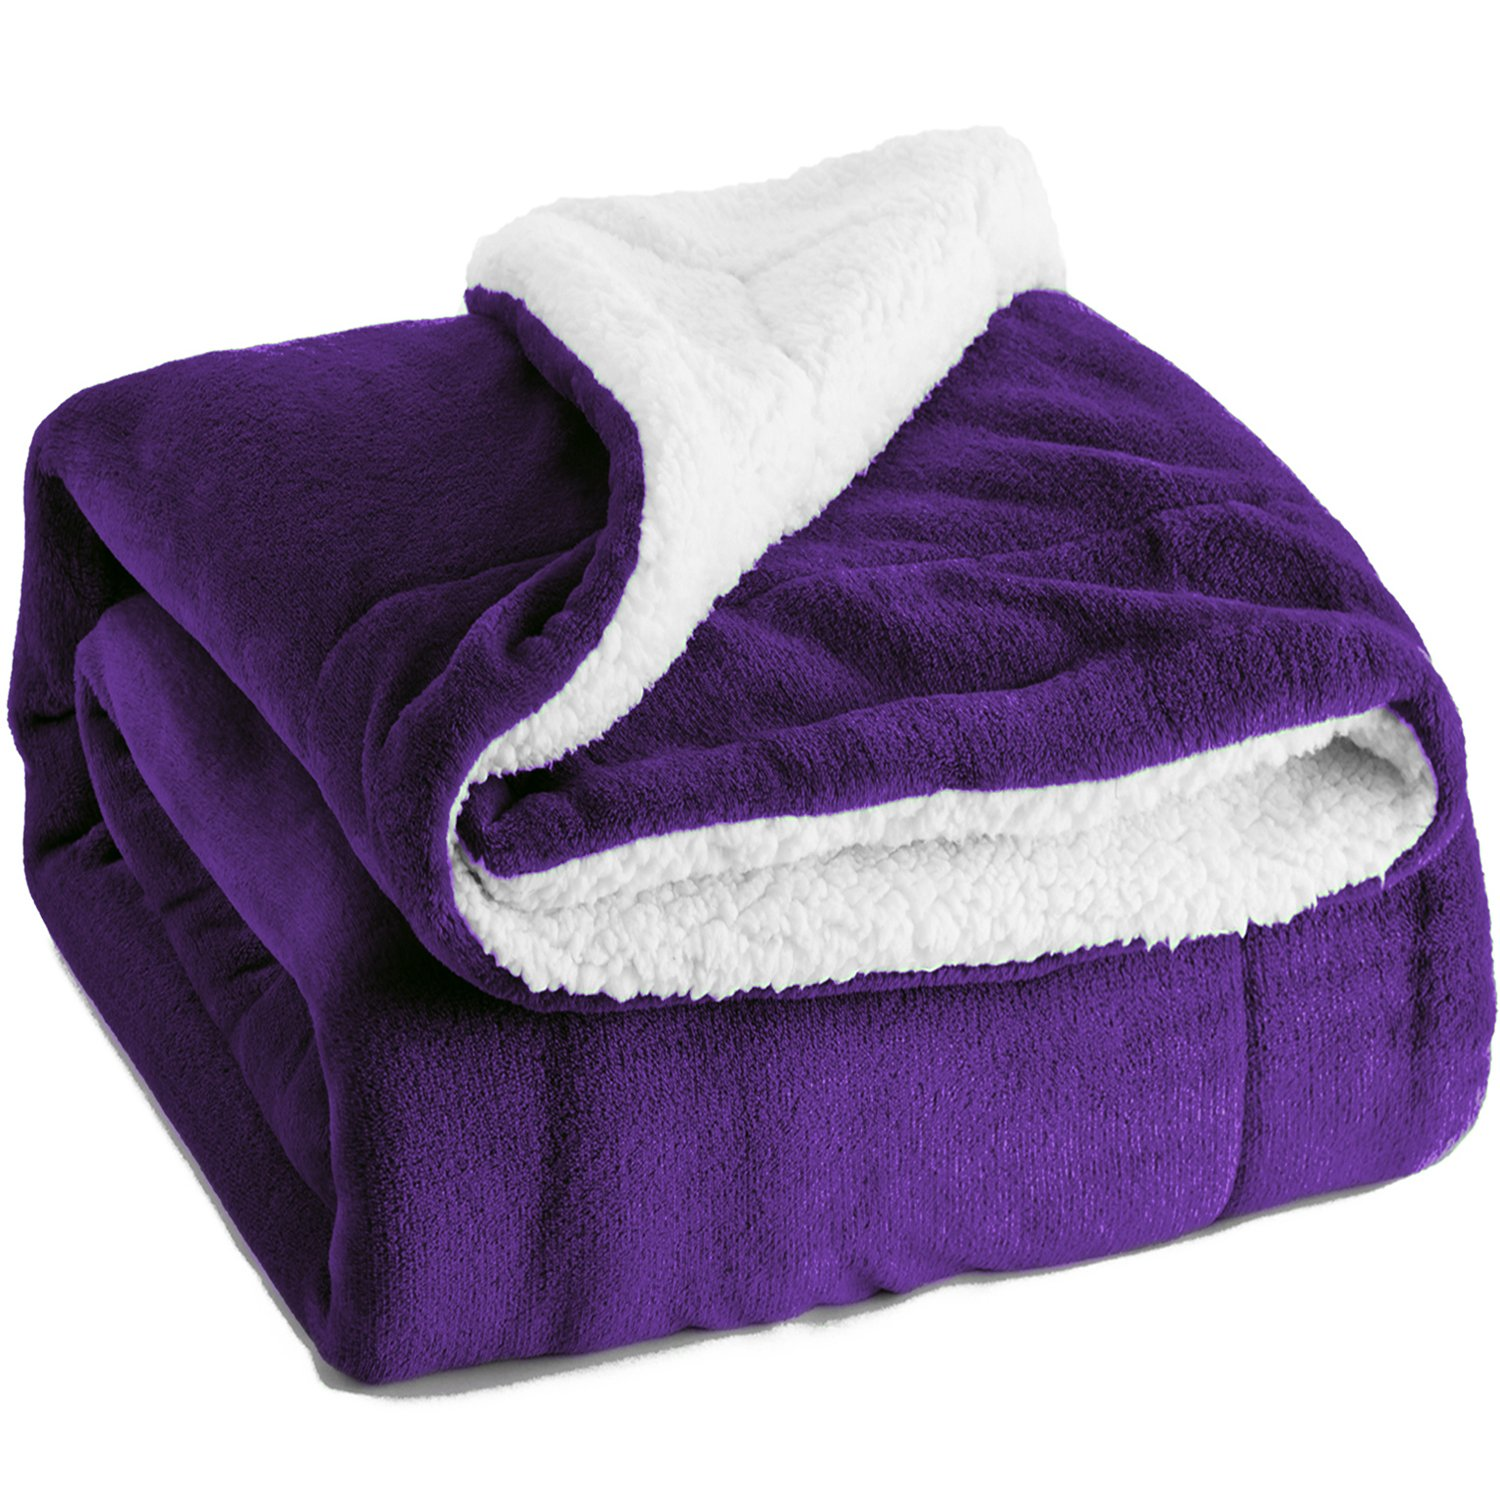 Sherpa Throw Blanket Purple 50x60 Reversible Fuzzy Microfiber All Season Blanket for Bed or Couch by Bedsure